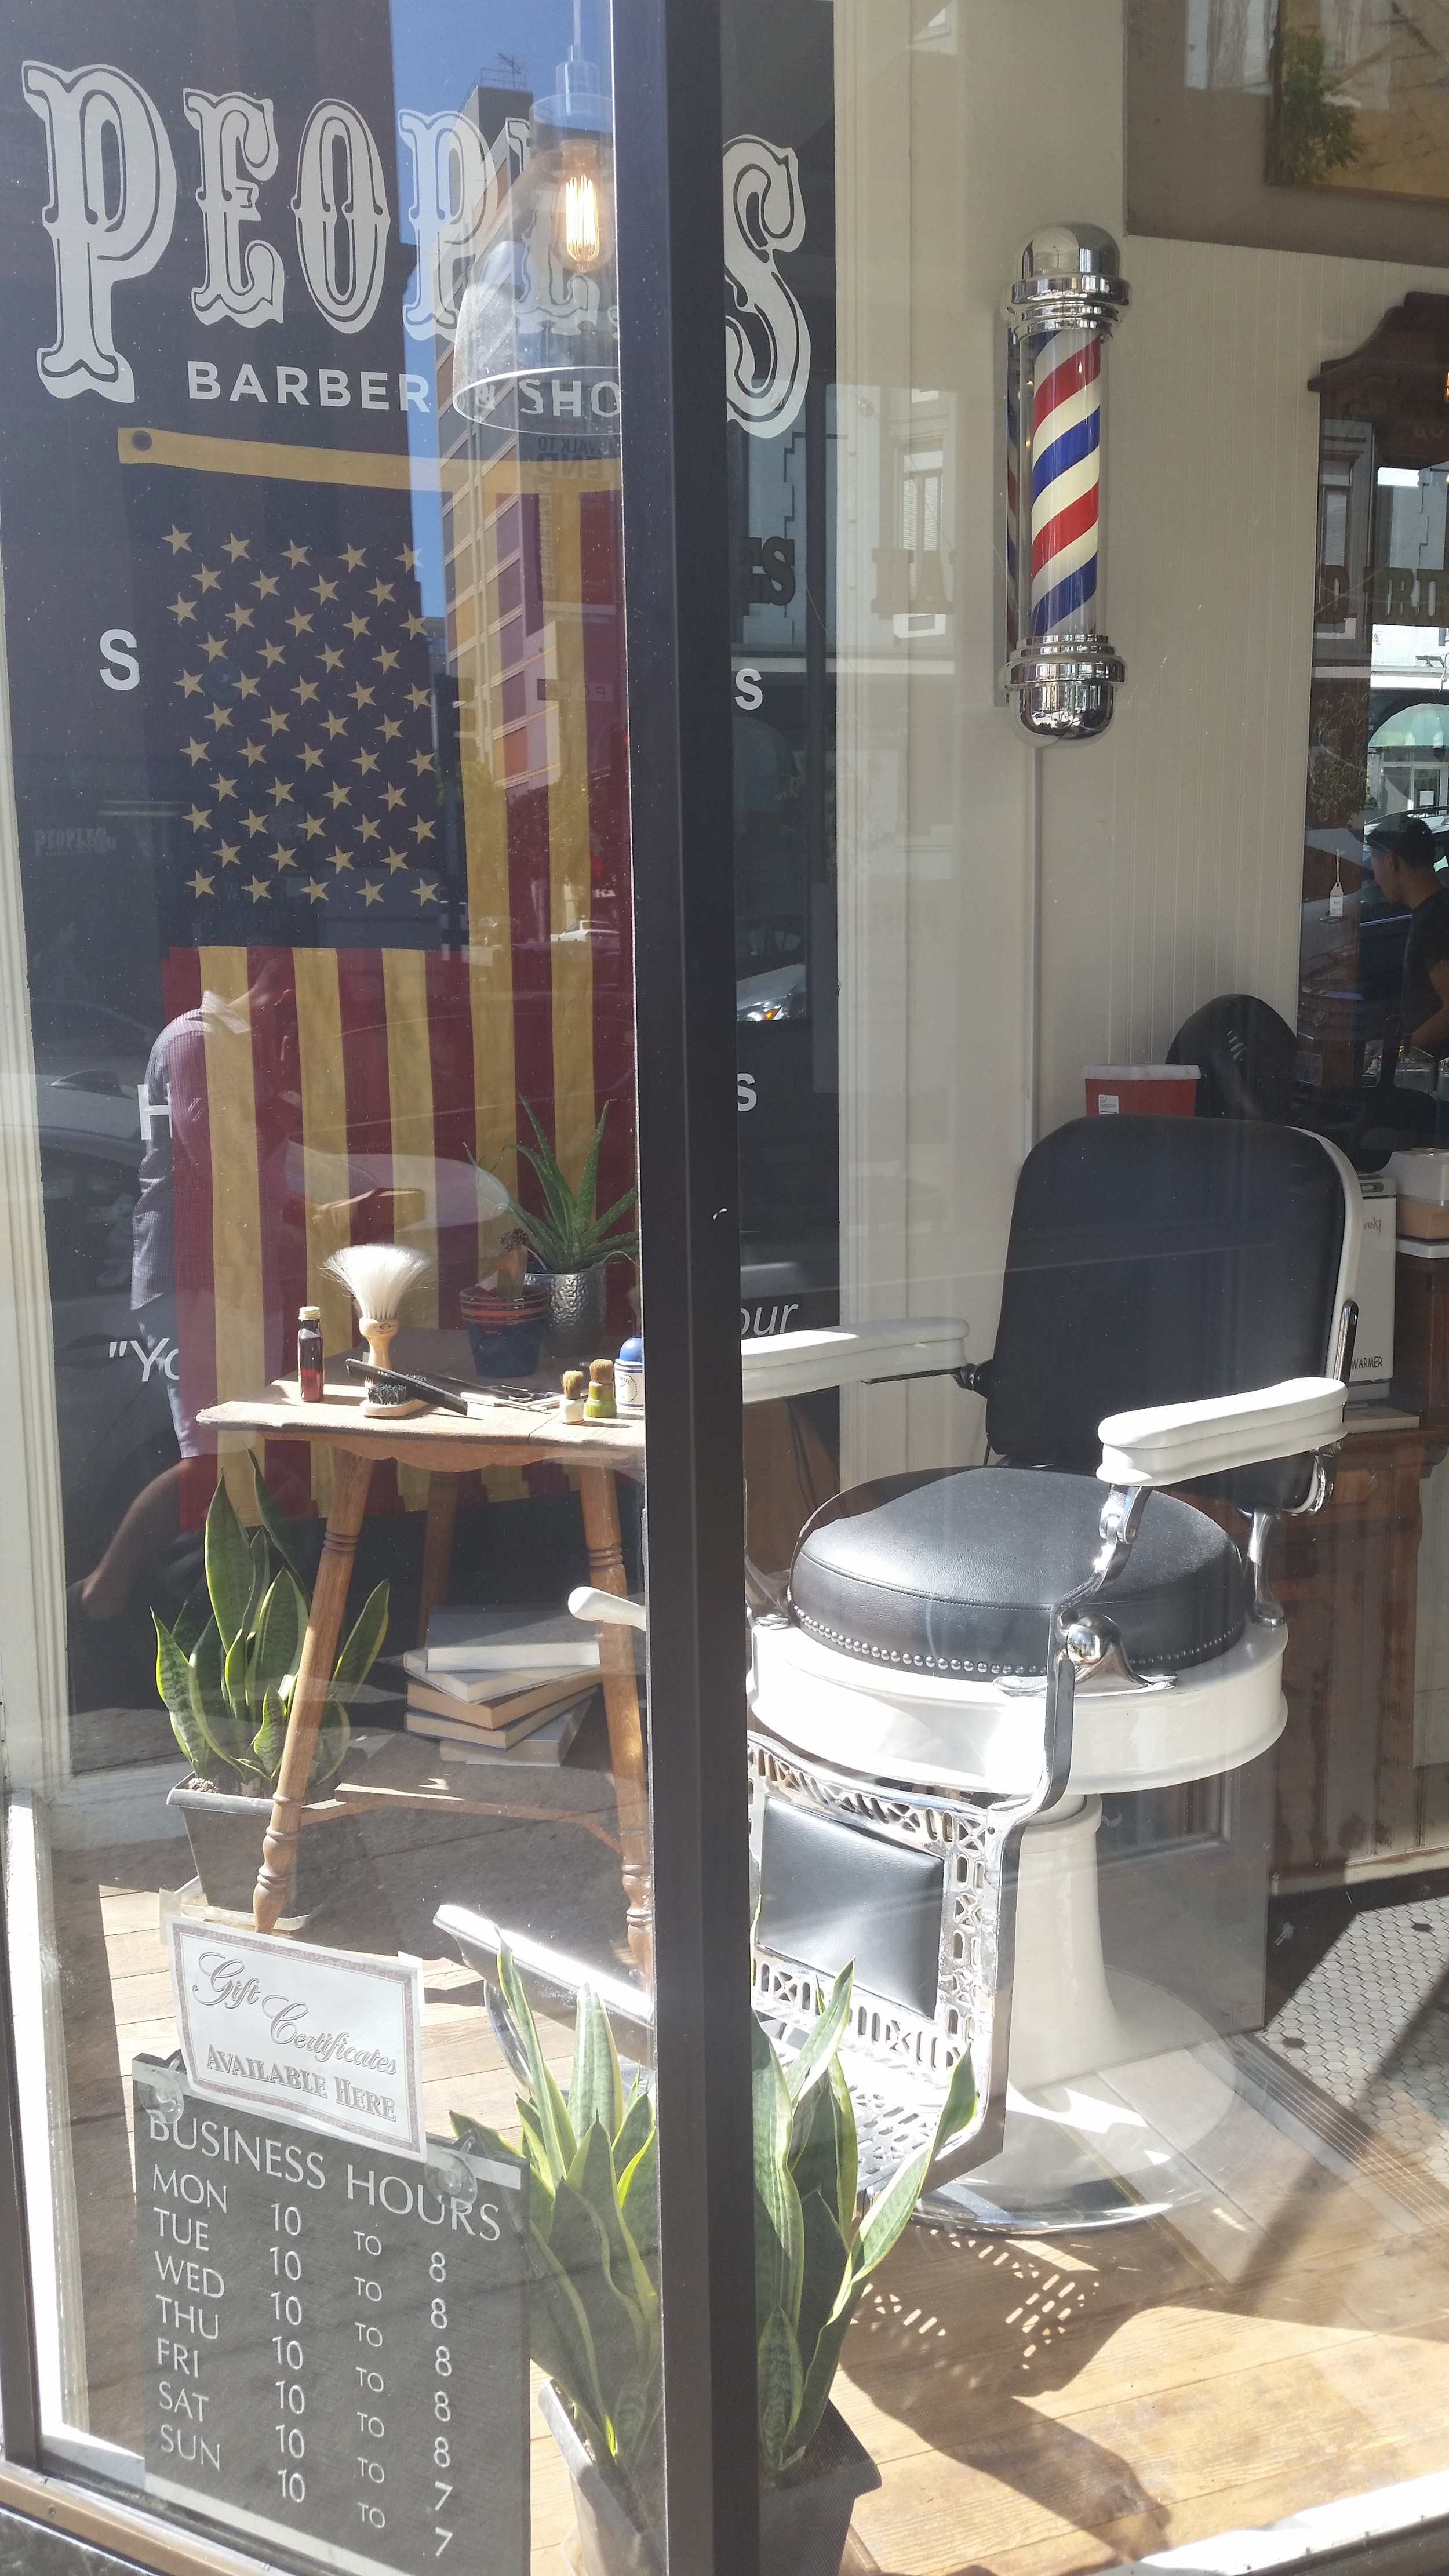 Peoples Barber and Shop located on Polk Street, San Francisco.